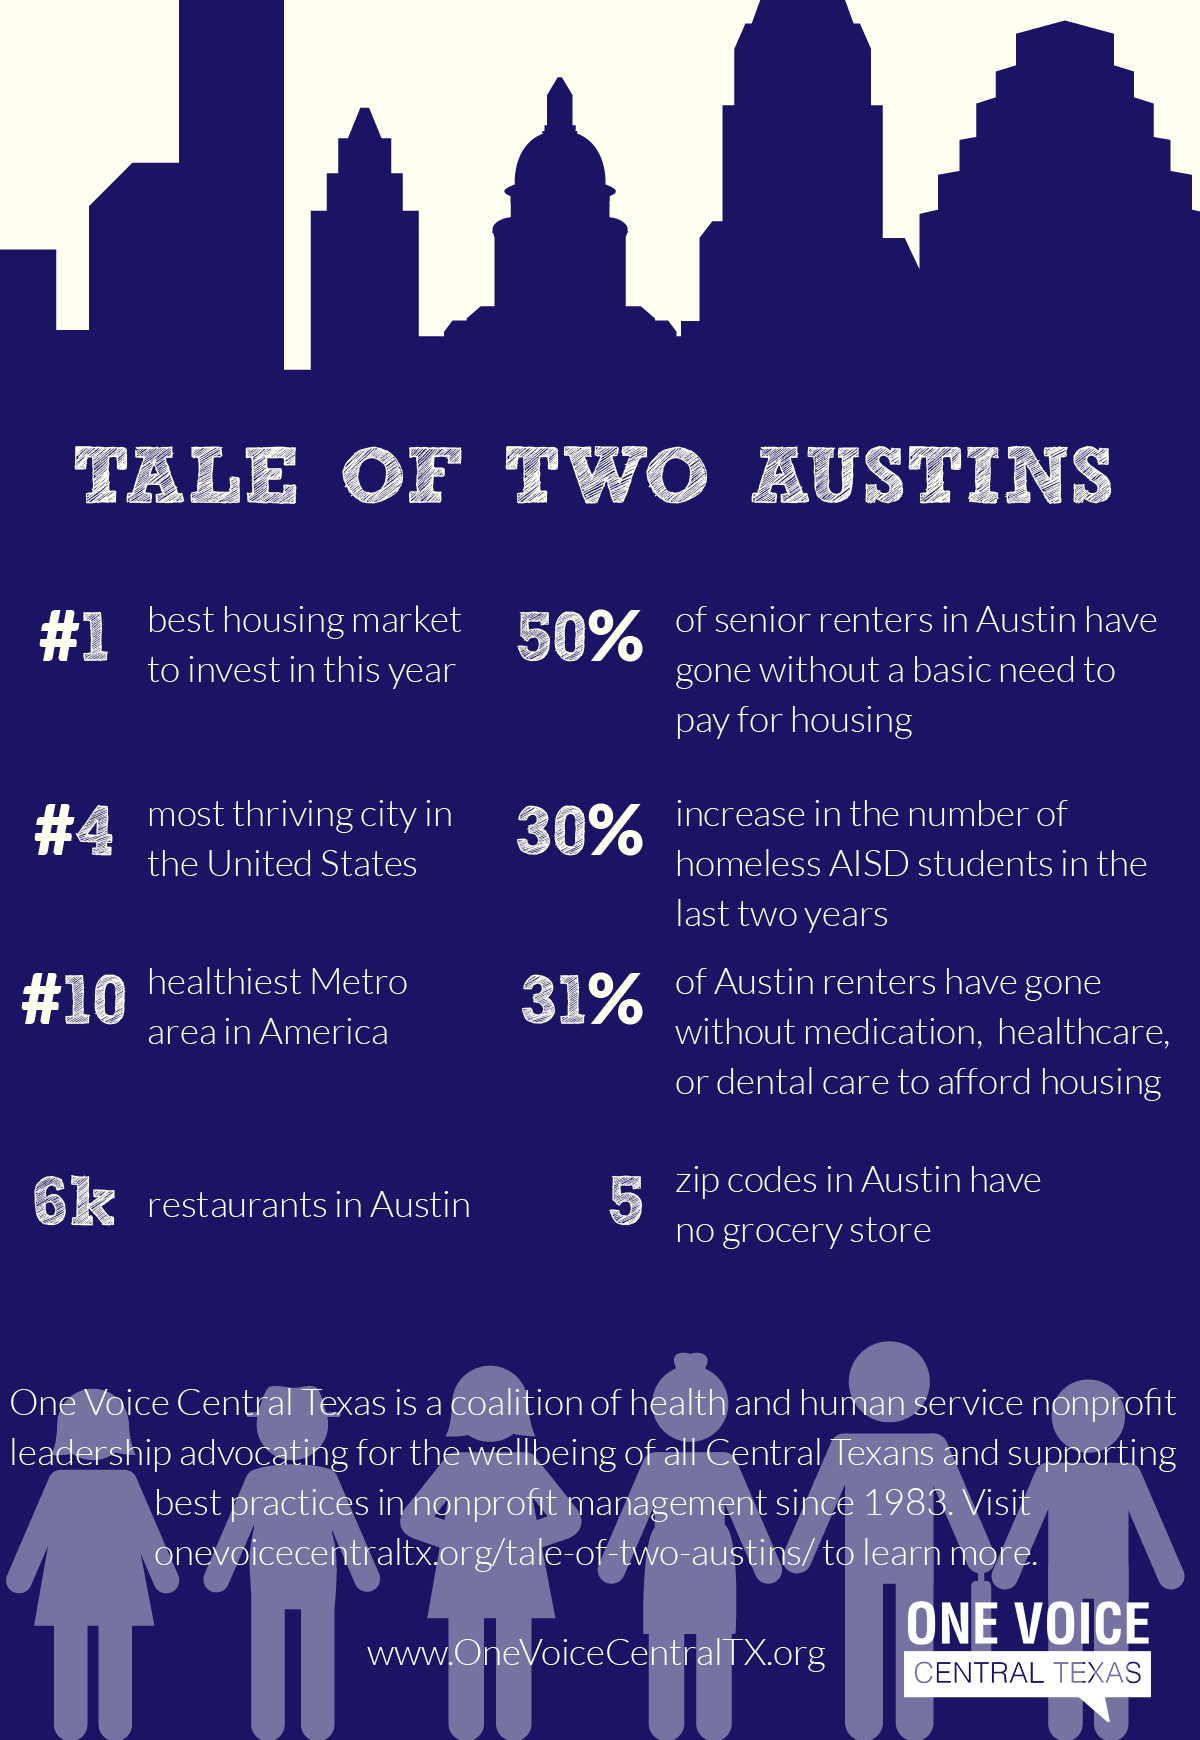 http://onevoicecentraltx.org/tale-of-two-austins/